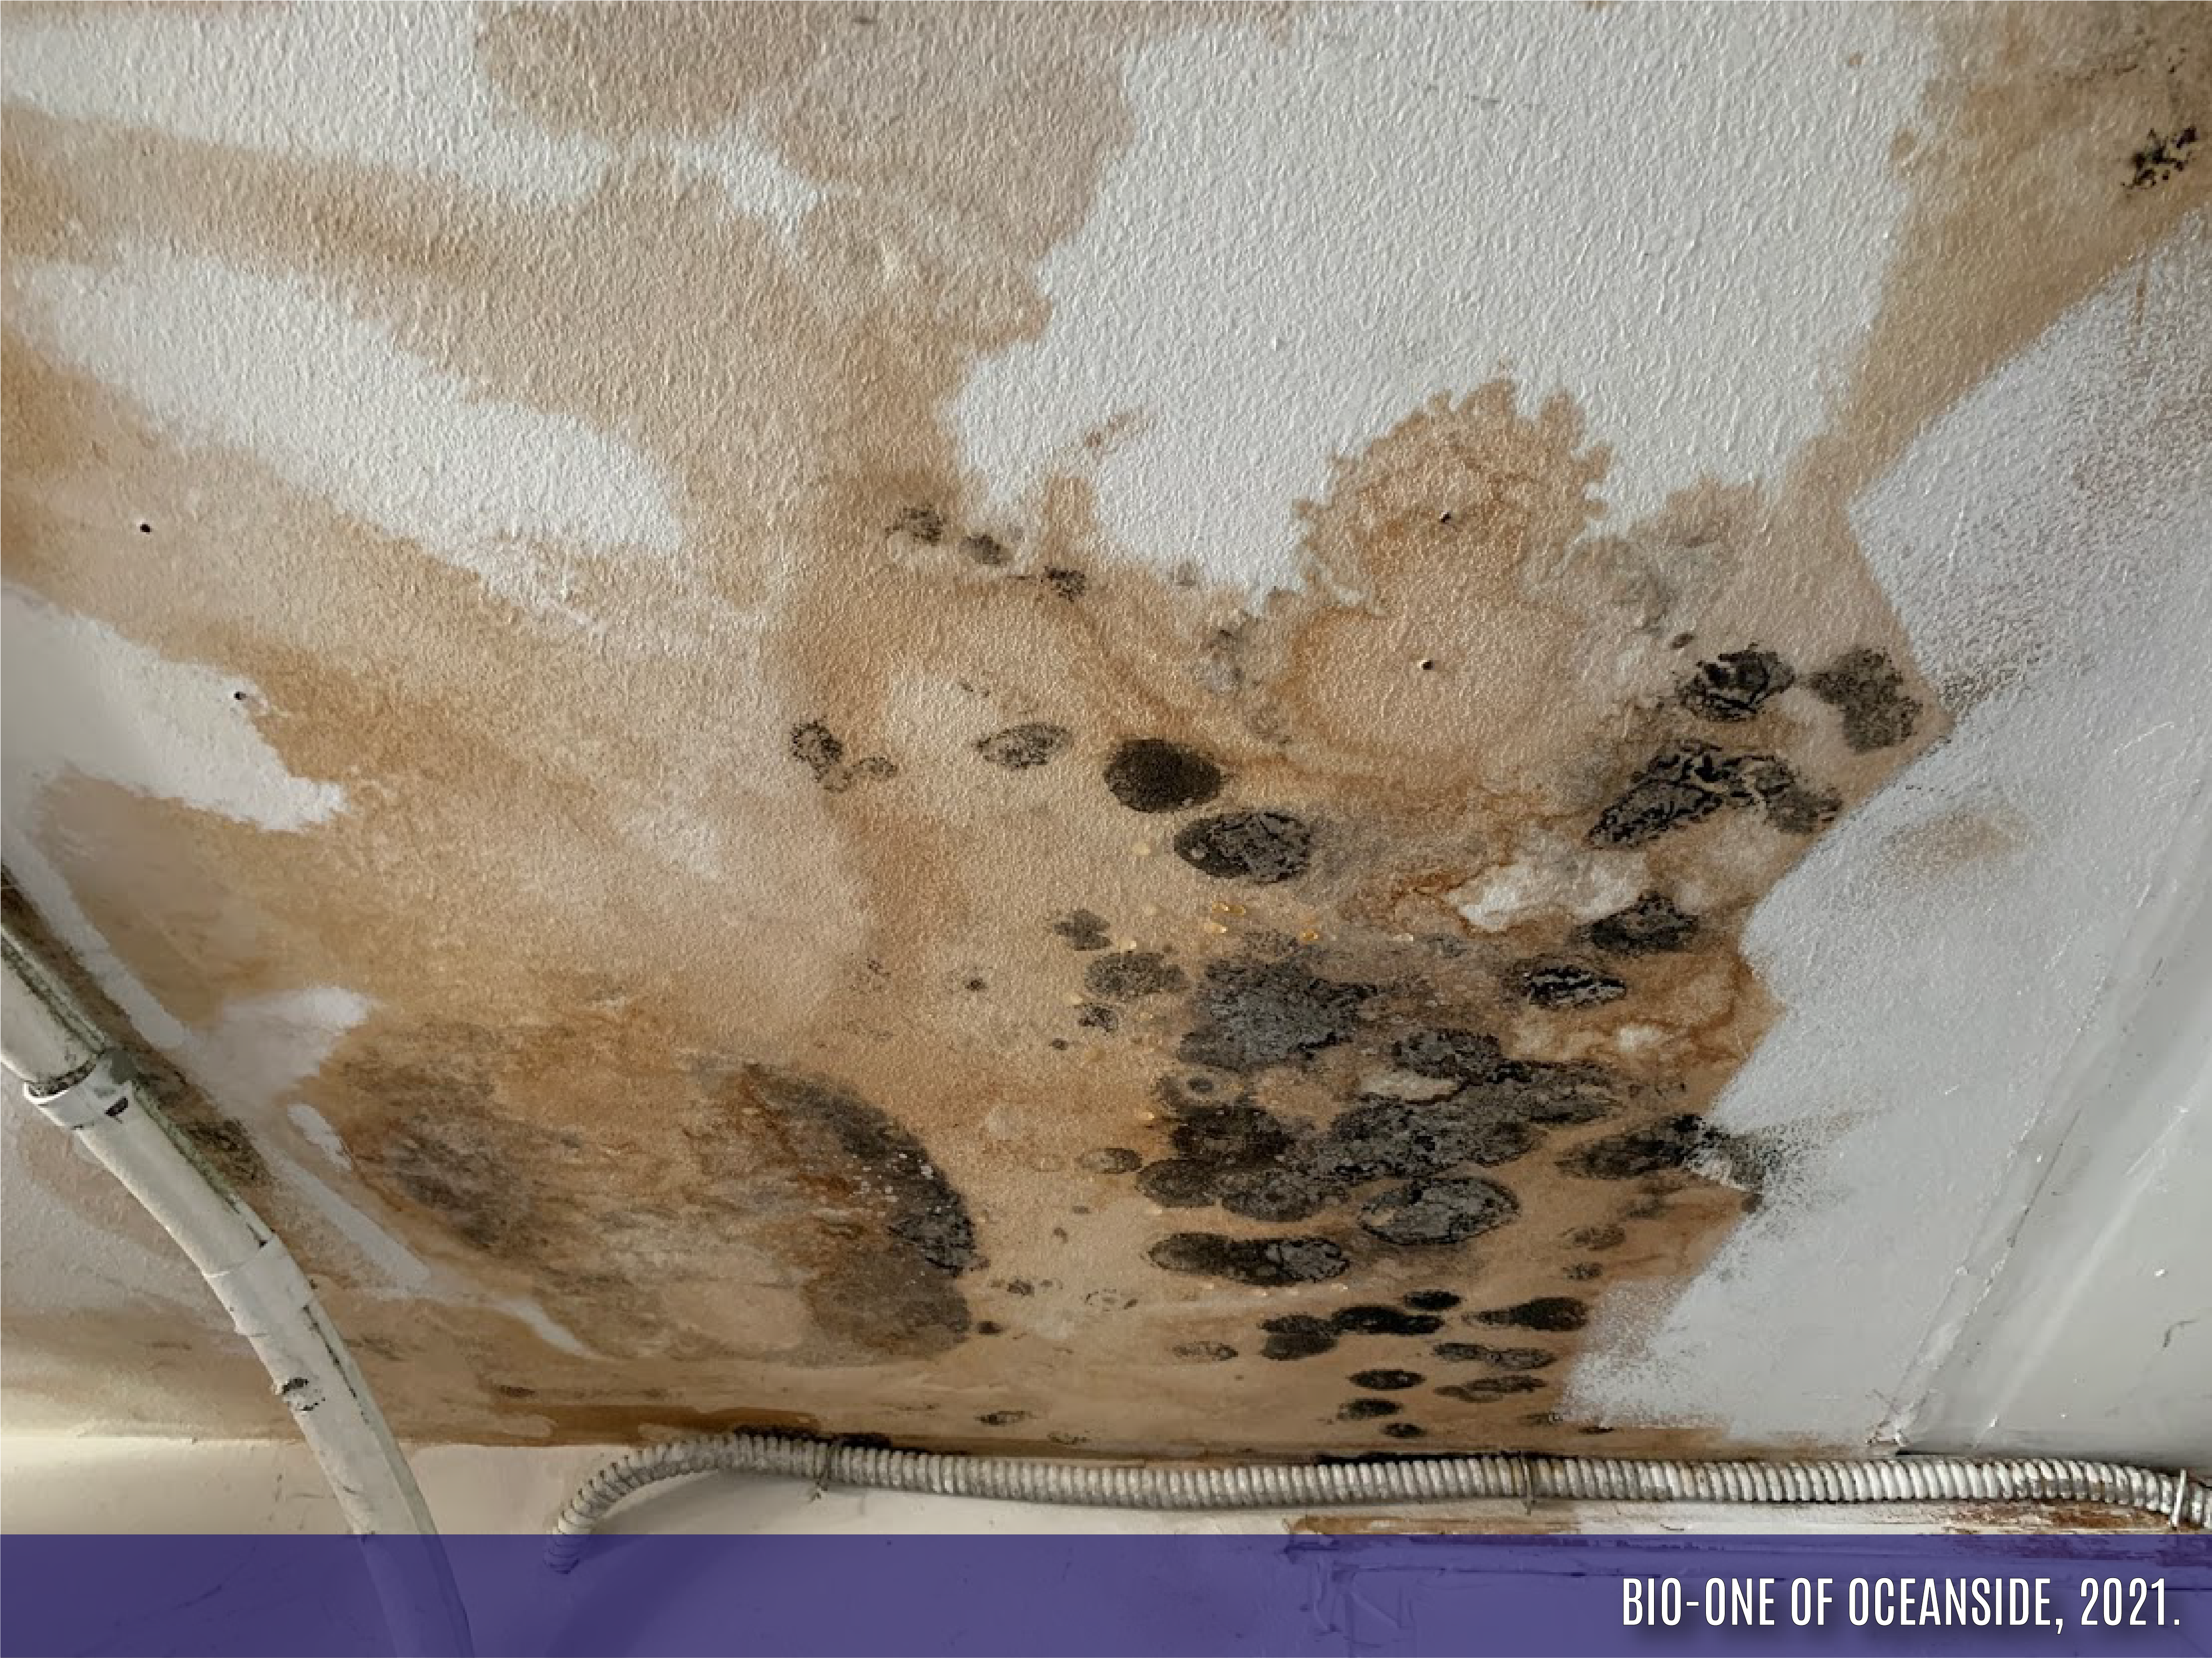 """Image shows a water leak issue that resulted in mold damage to a ceiling area. It has a banner on the bottom with our Company Name and year the photo was taken: """"Bio-One of Oceanside, 2021."""""""